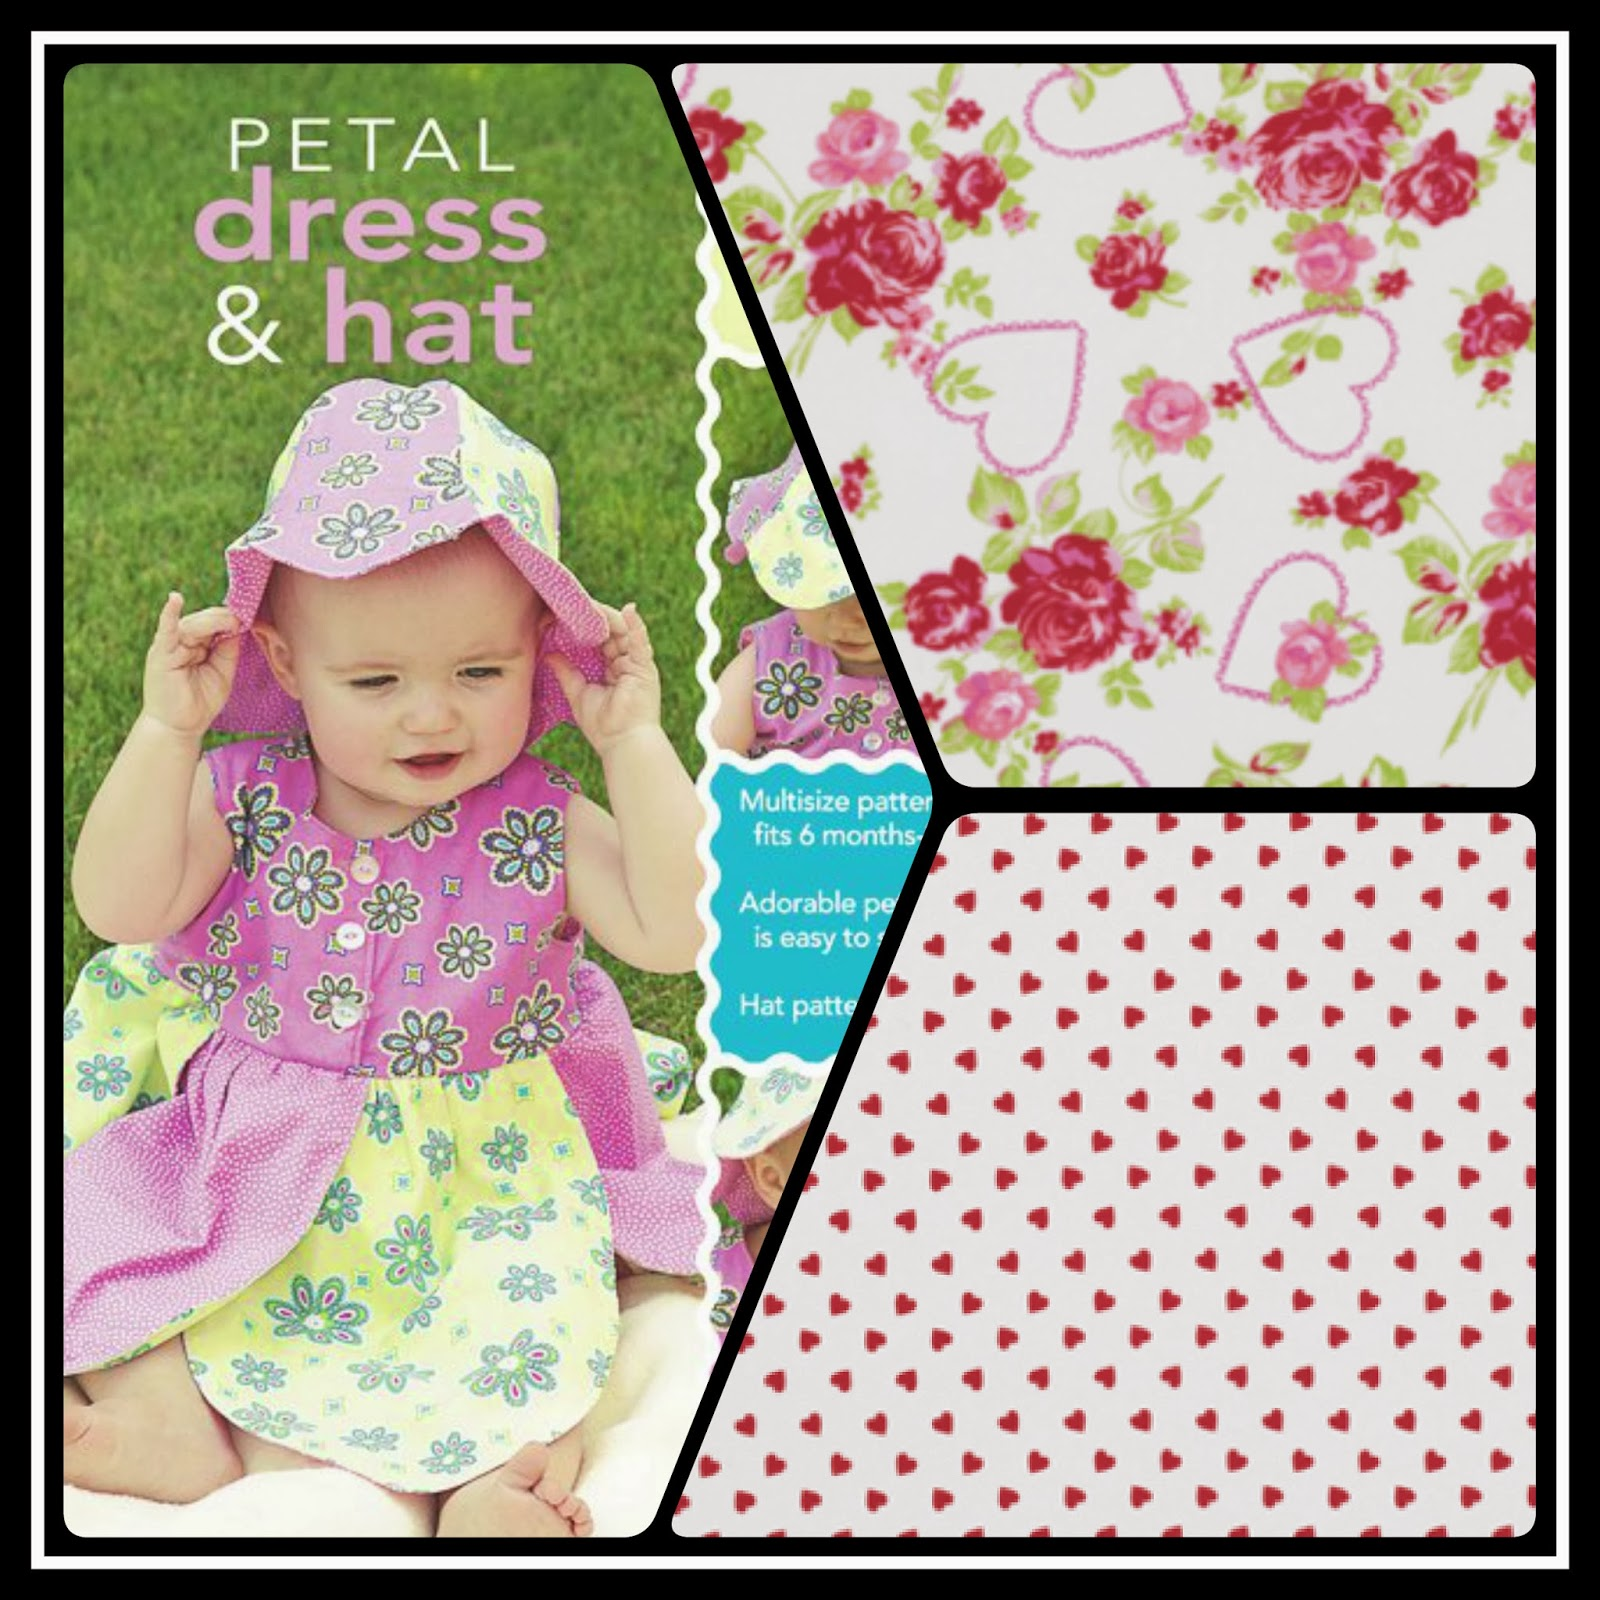 http://www.patternsonly.com/petal-dress-hat-sew-baby-pdf-epattern-6mths2yrs-p-4361.html